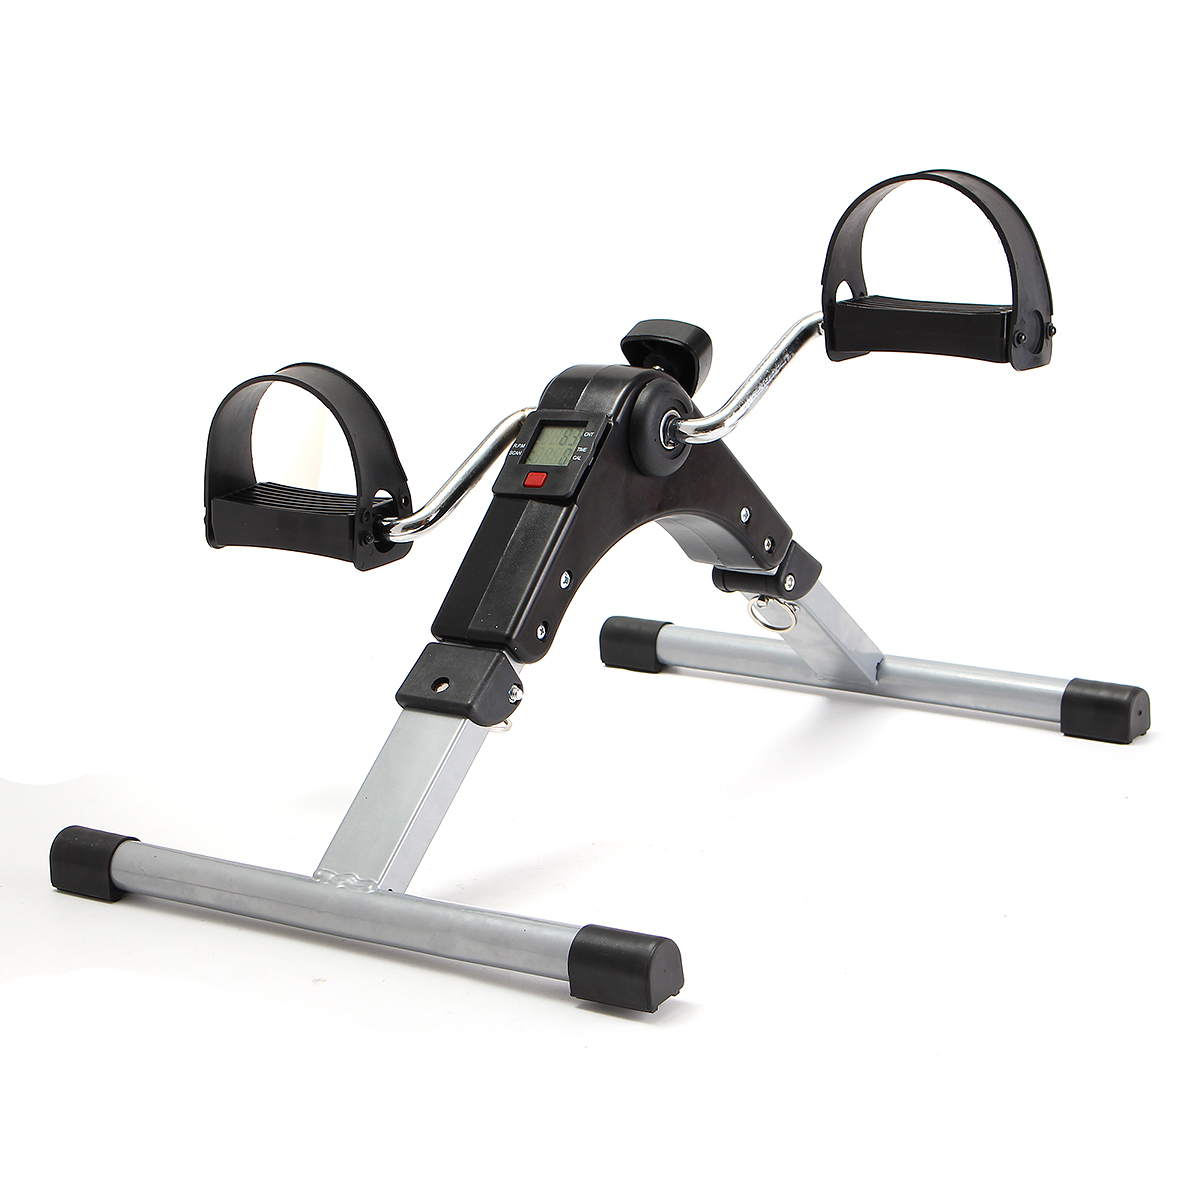 Proactive Rehabilitation Health Mobility Trainer training Arm and Leg Exercise Bike Fitness Adjust Resistance Display Calories proactive rehabilitation health mobility trainer training arm and leg exercise bike fitness adjust resistance display calories